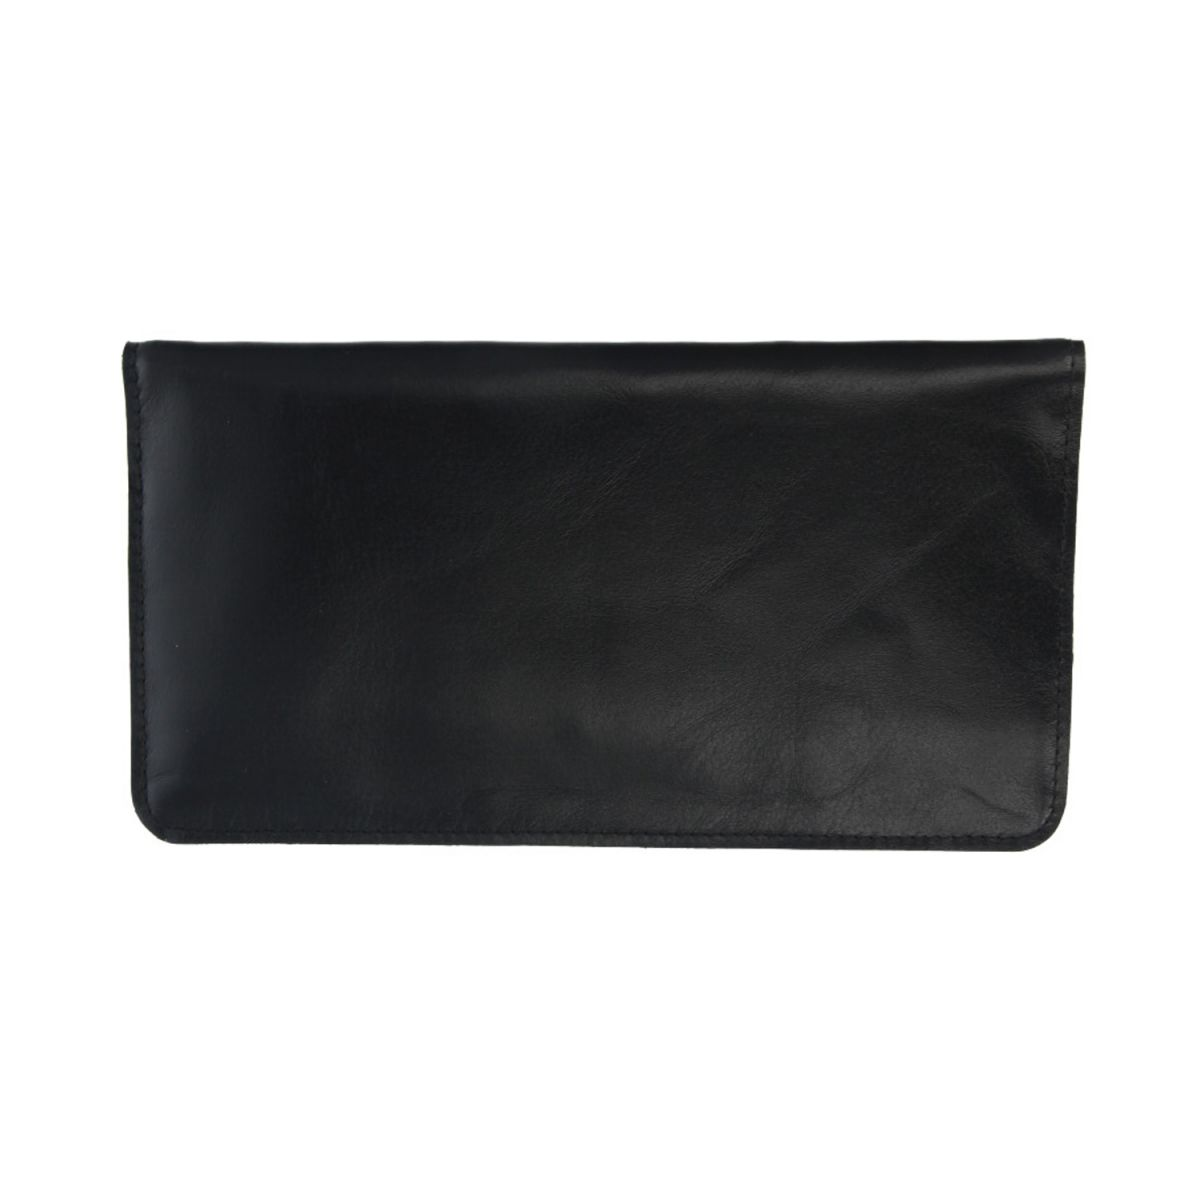 faraday phone pouch leather black